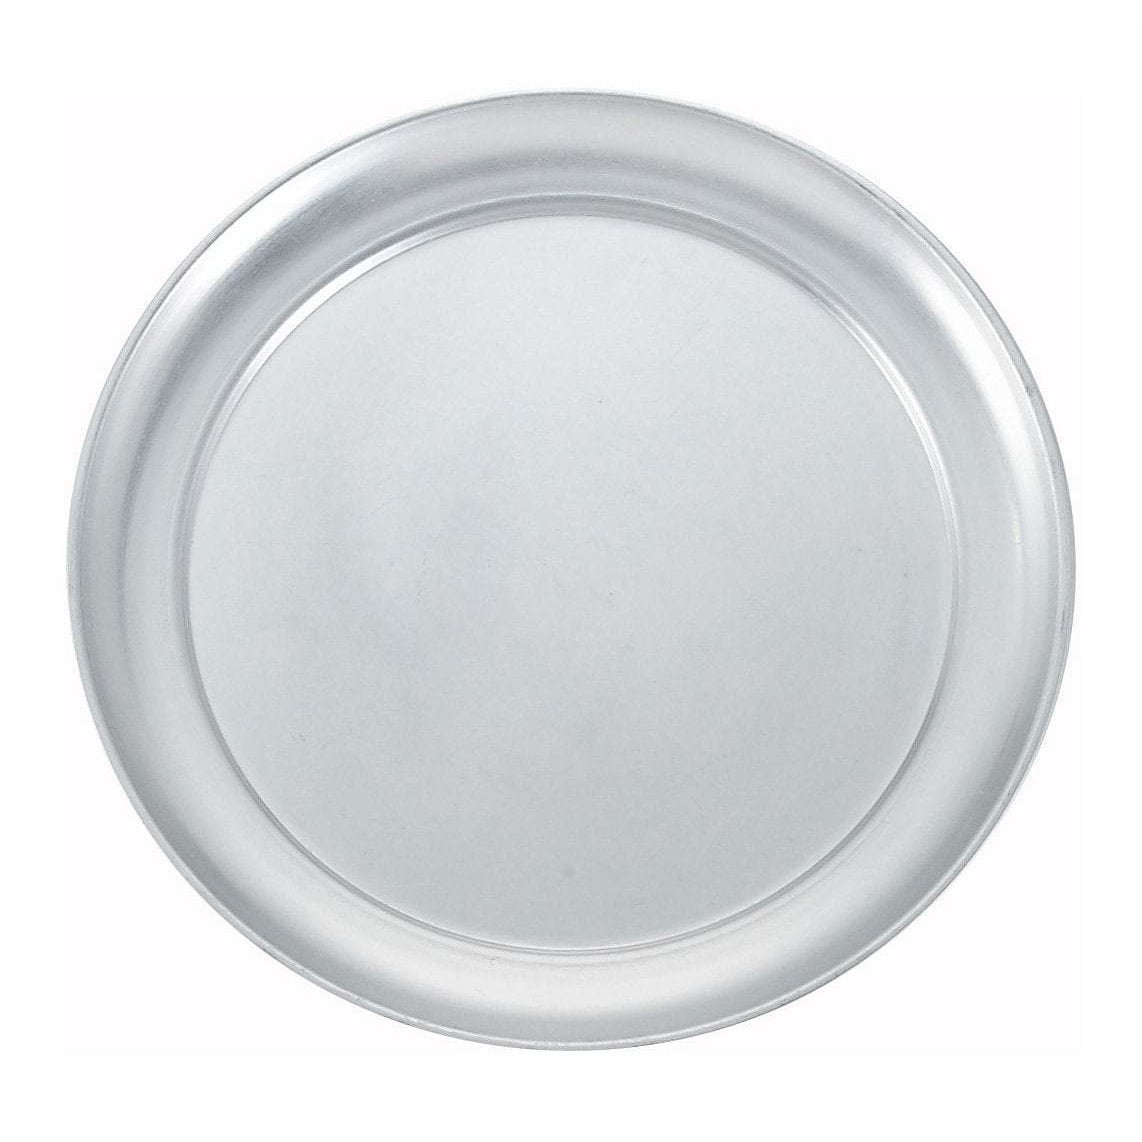 "Winco - APZT-10 - 10"" Wide Rim Pizza Tray, Aluminum - Pizza Supplies"